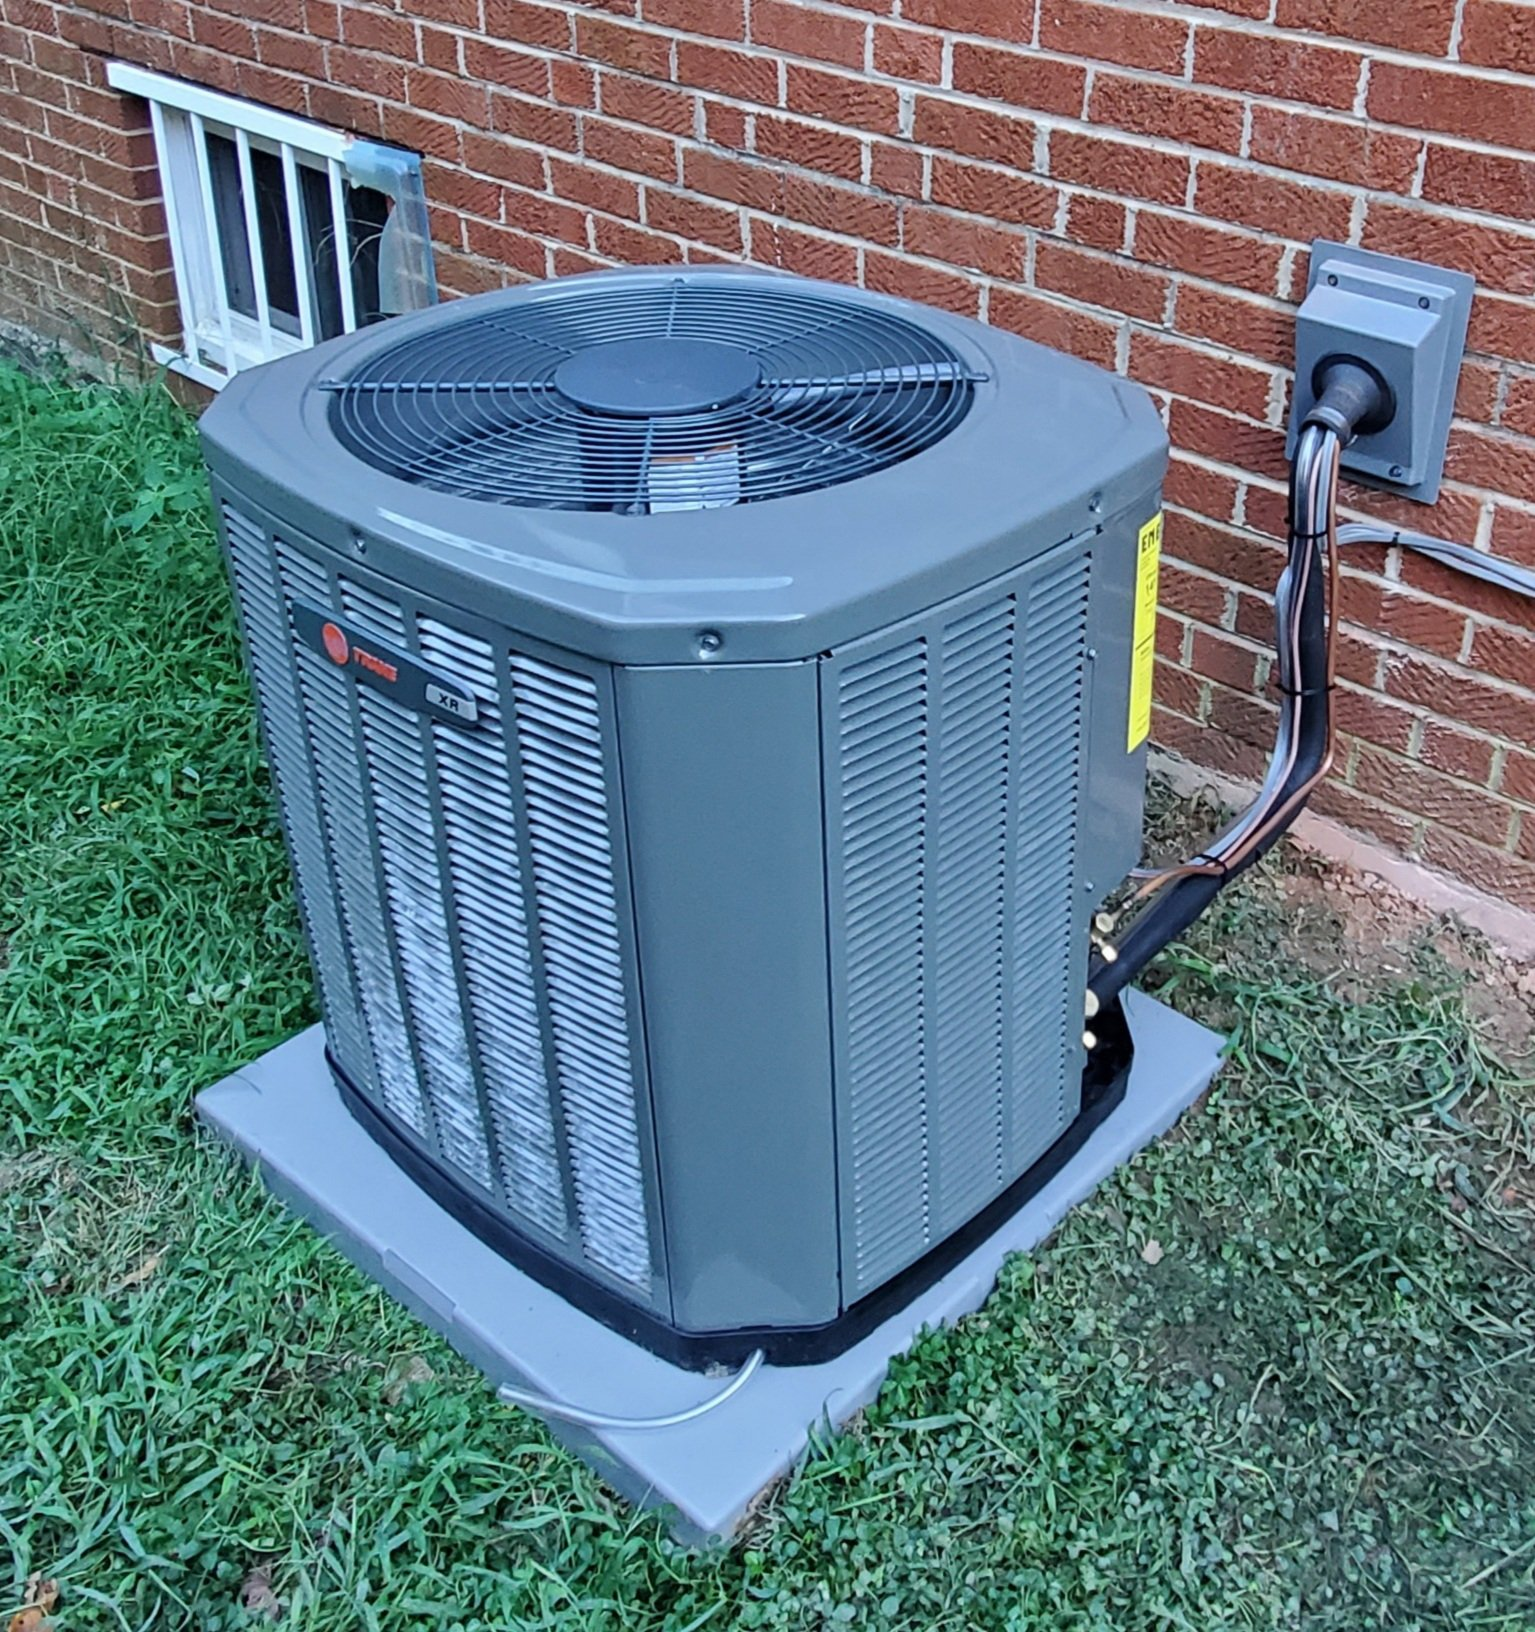 Image to show reader a heat pump while reading about causes of no heat